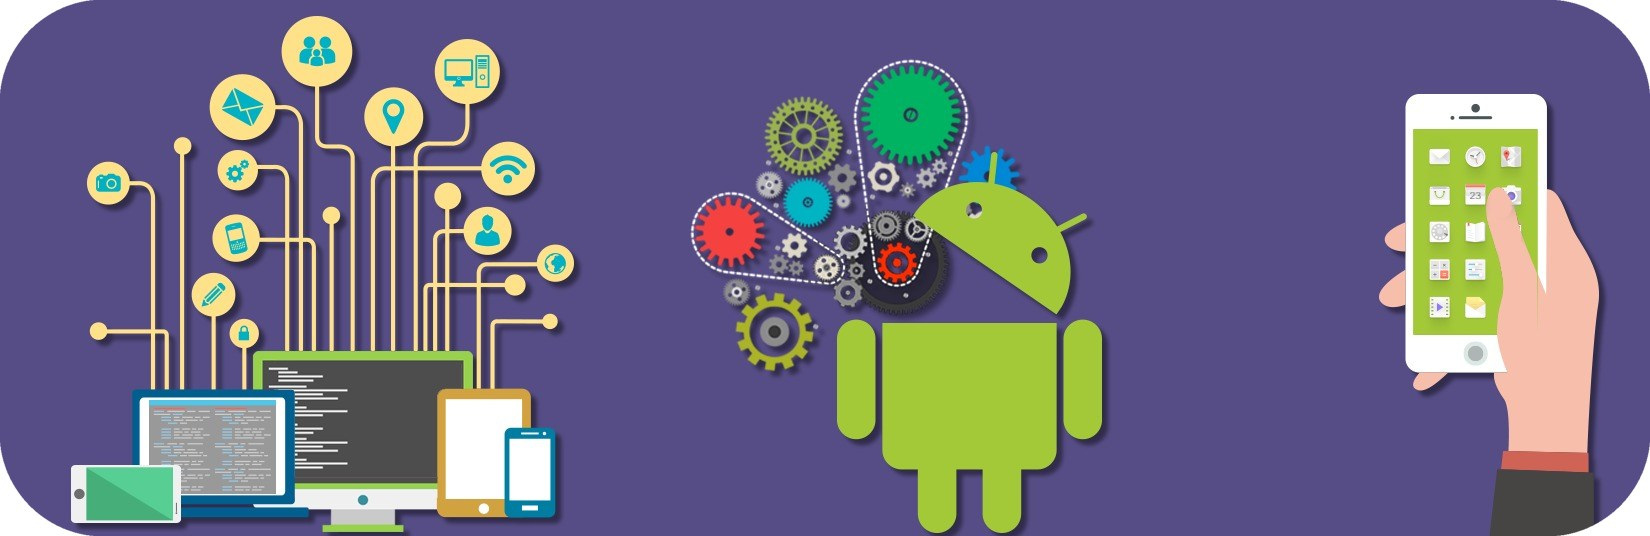 A quick reference guide for Android development.